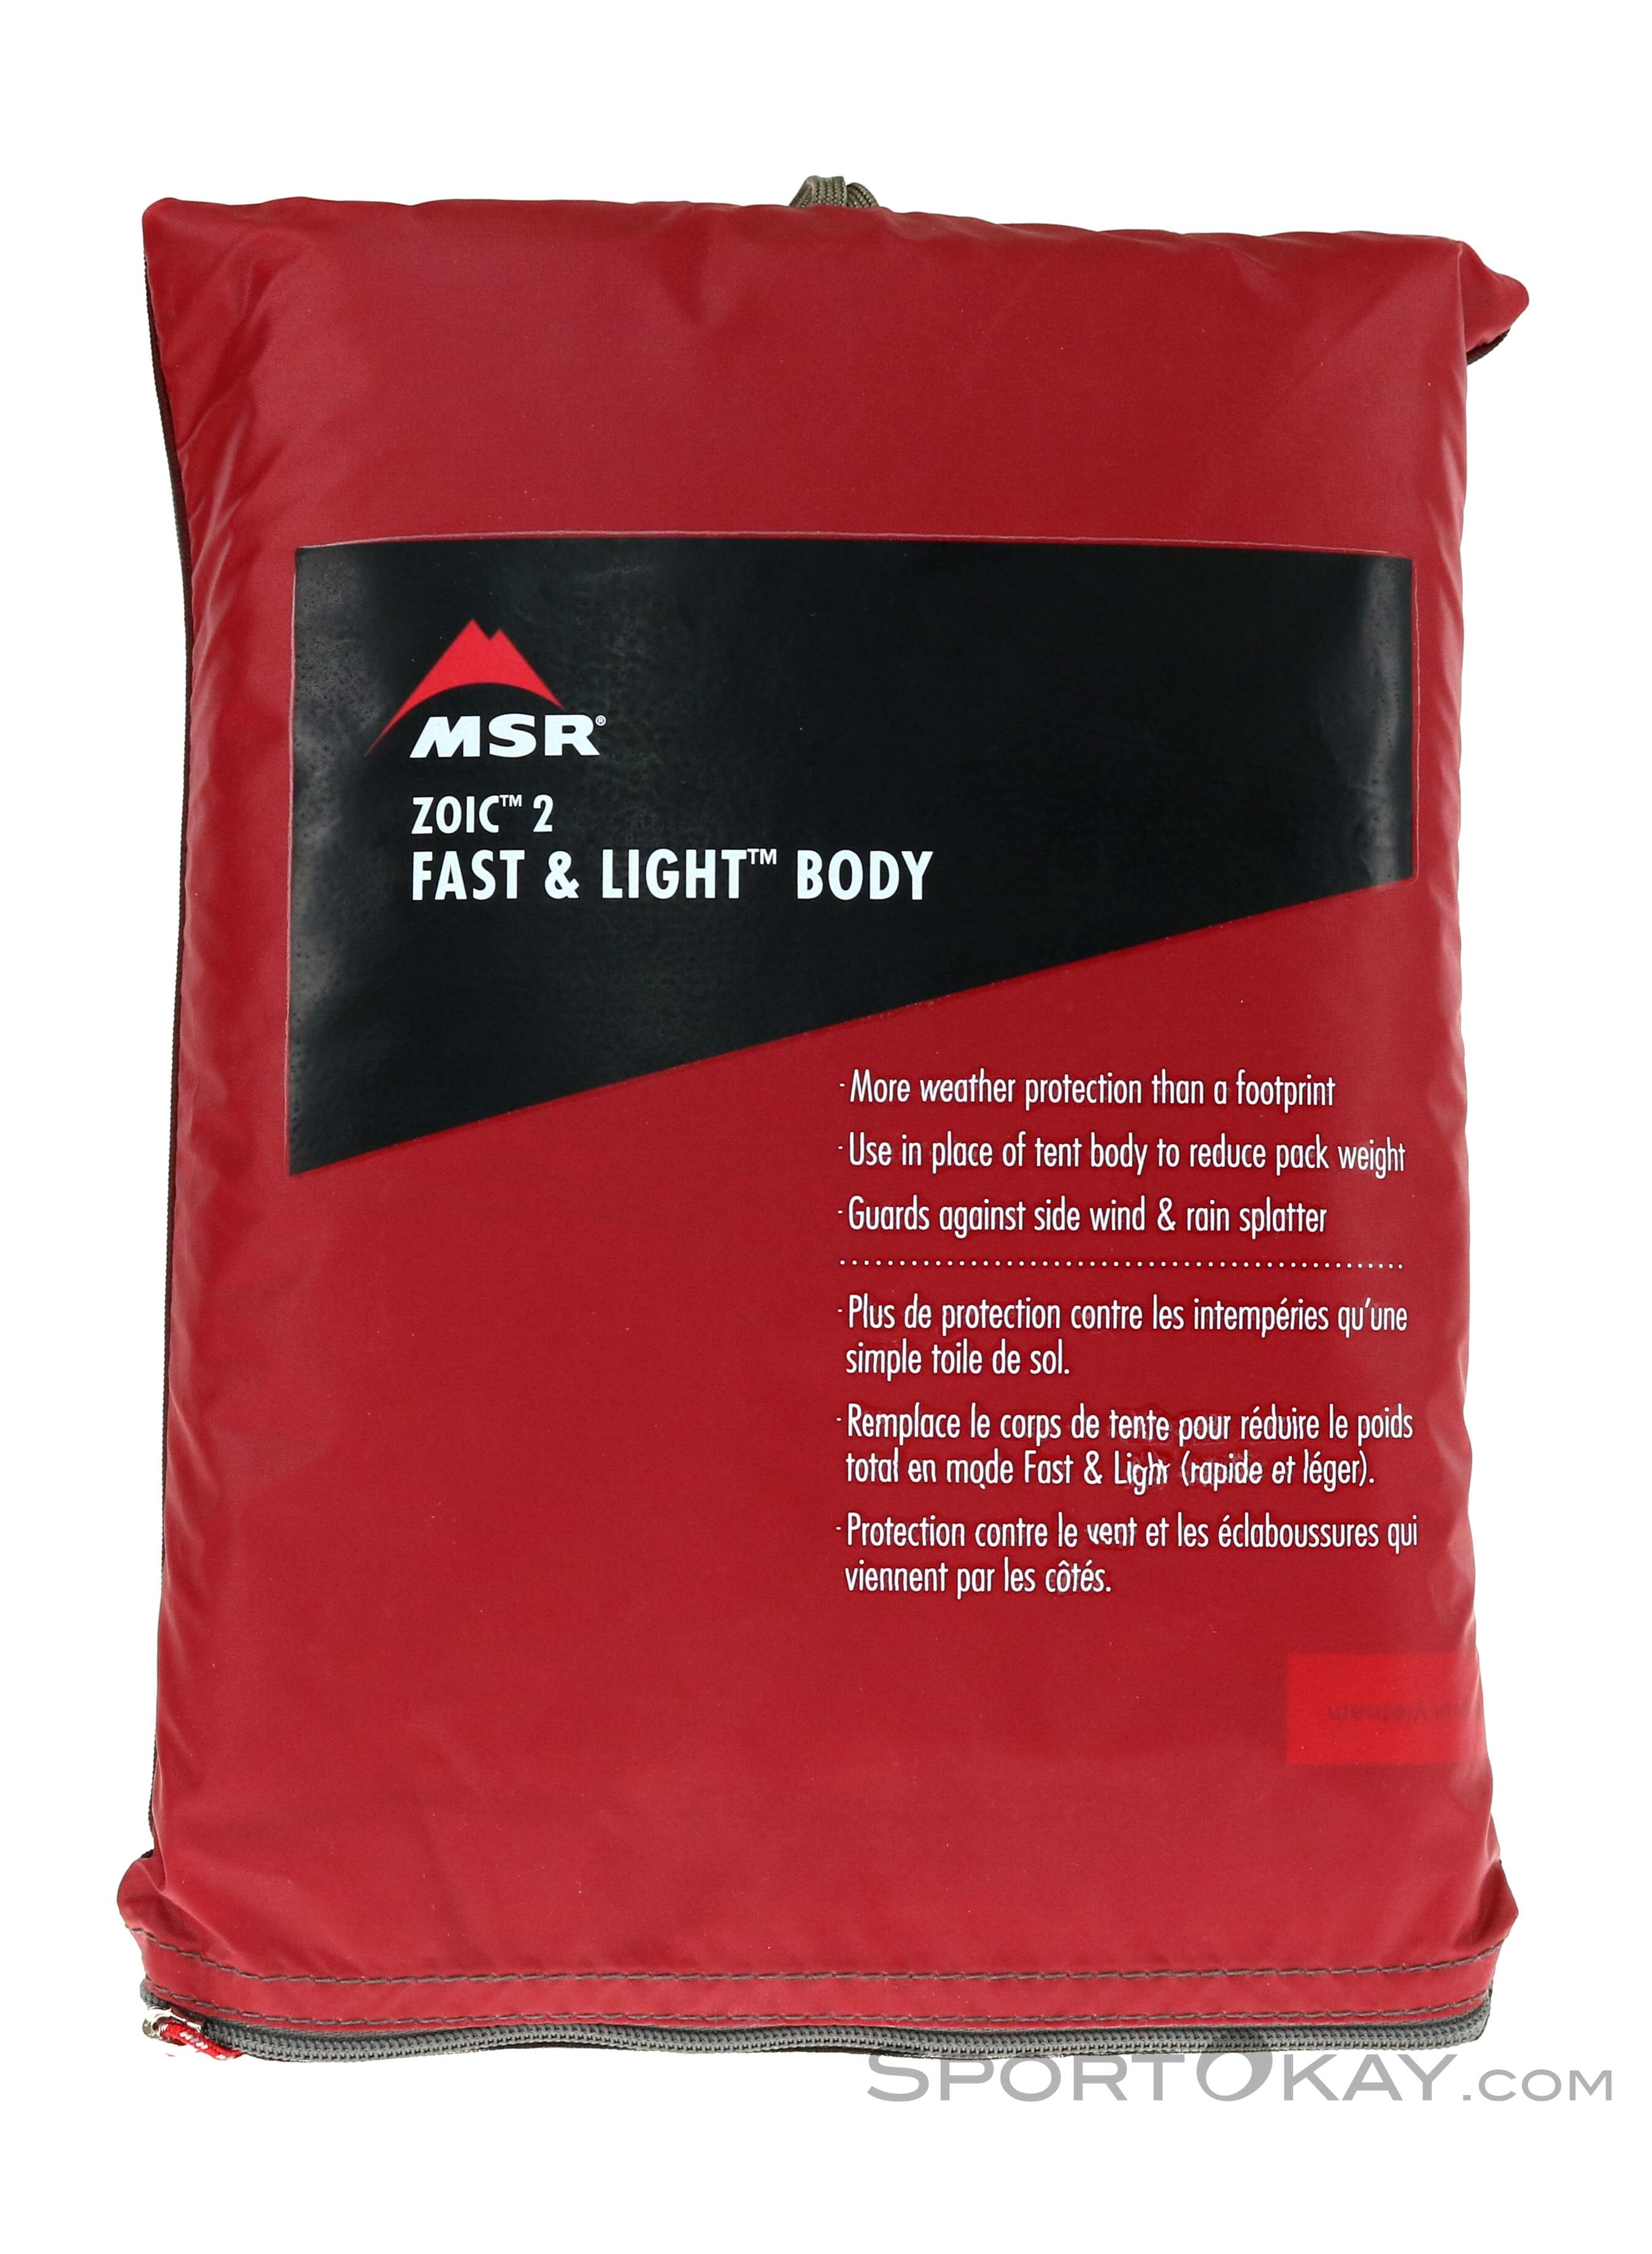 MSR MSR Zoic 2 Fast&Light Body Tent Accessory